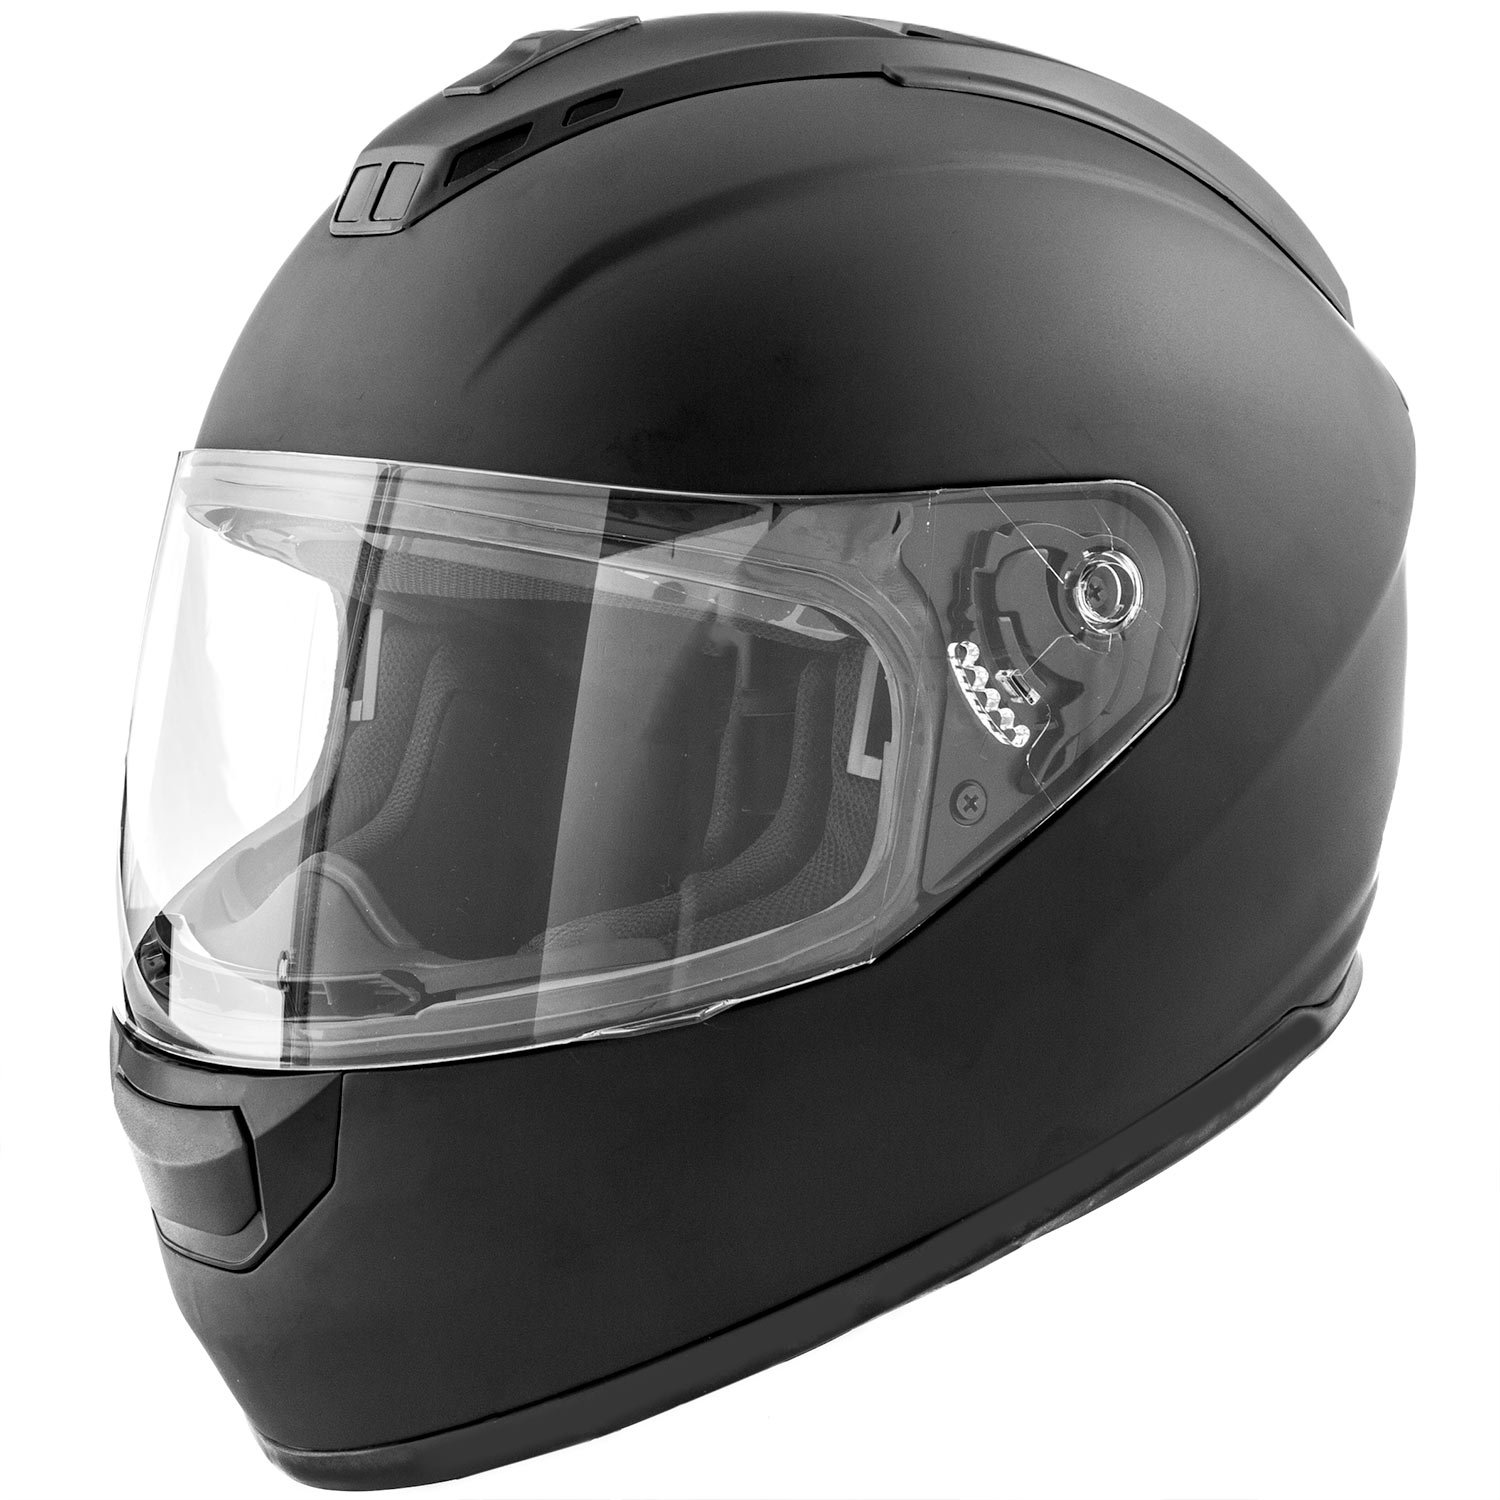 Amazon.es: Dot motocicleta casco Full Face Koi mate negro w/visera - Adulto pequeño